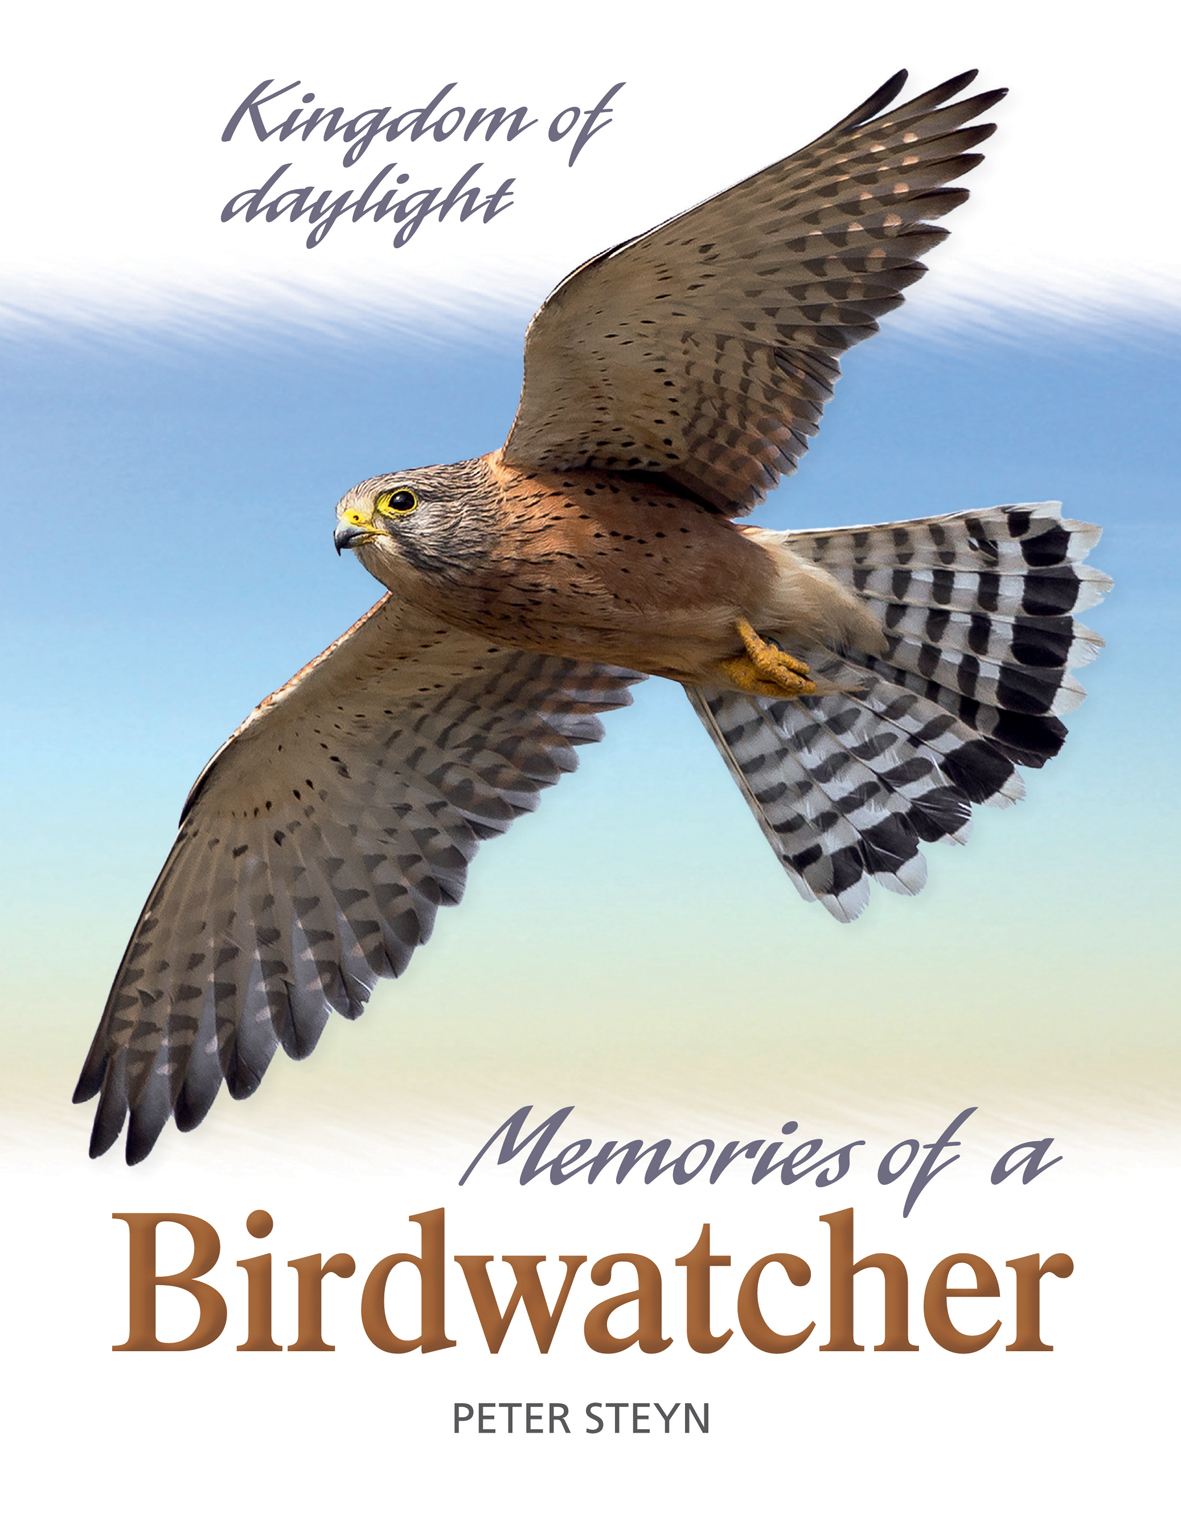 Kingdom of Daylight: Memories of a Birdwatcher